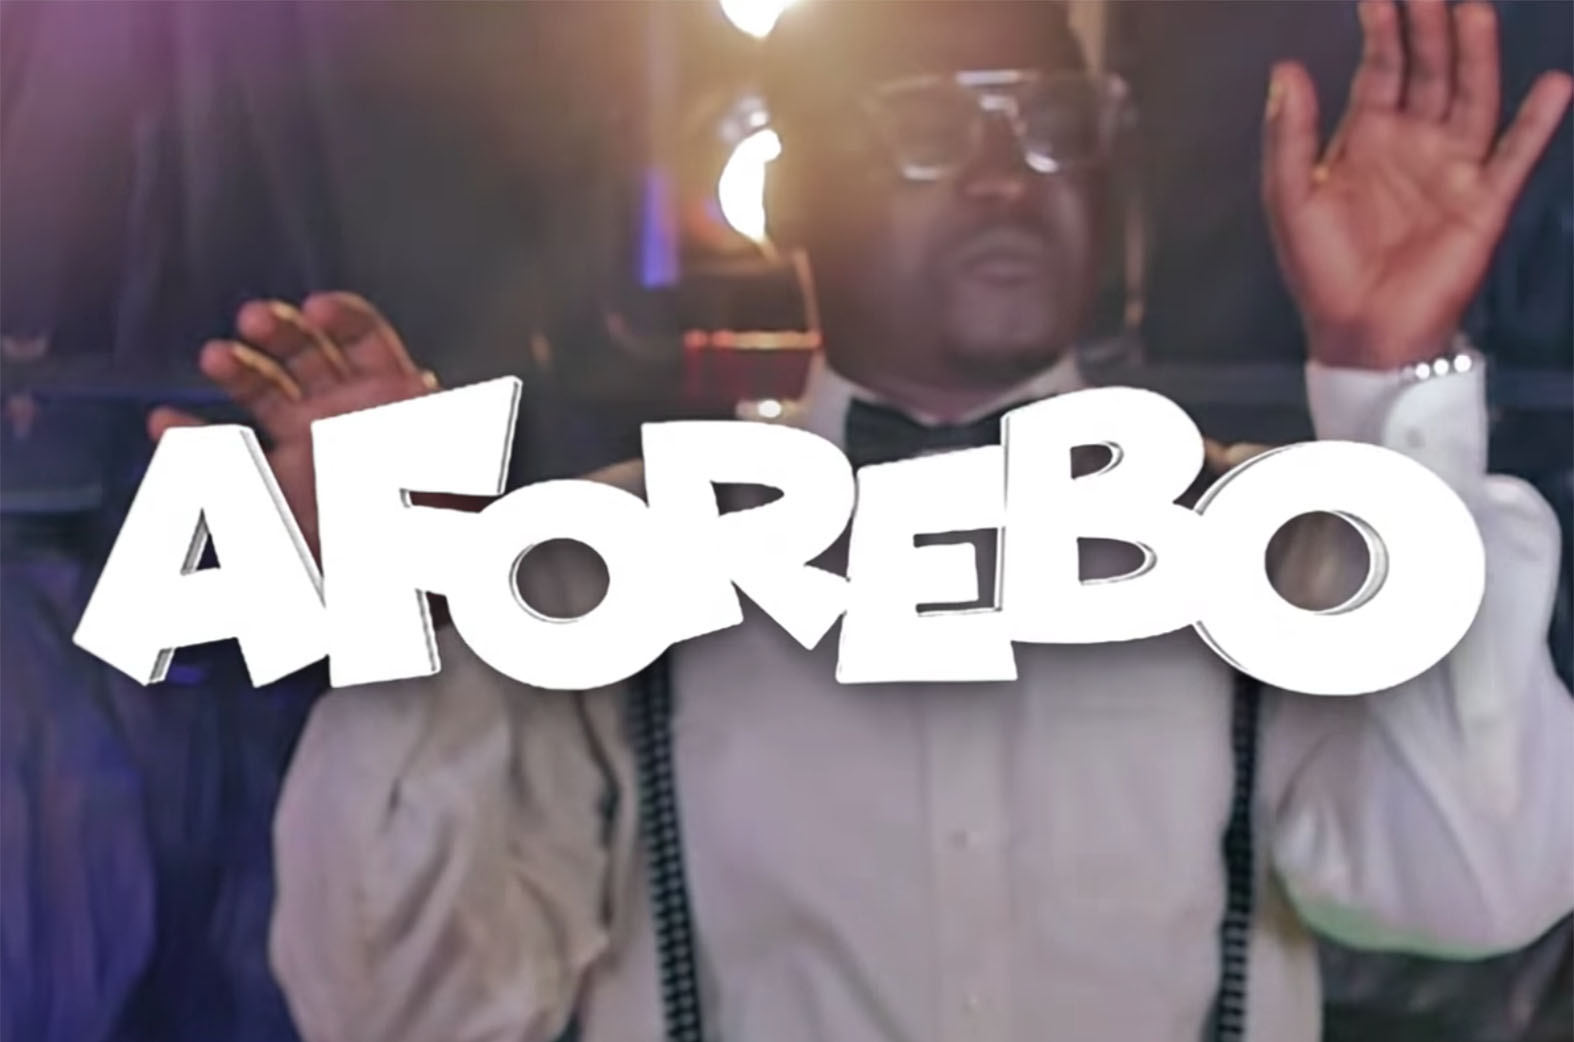 Video: Aforebo by Carl Clottey